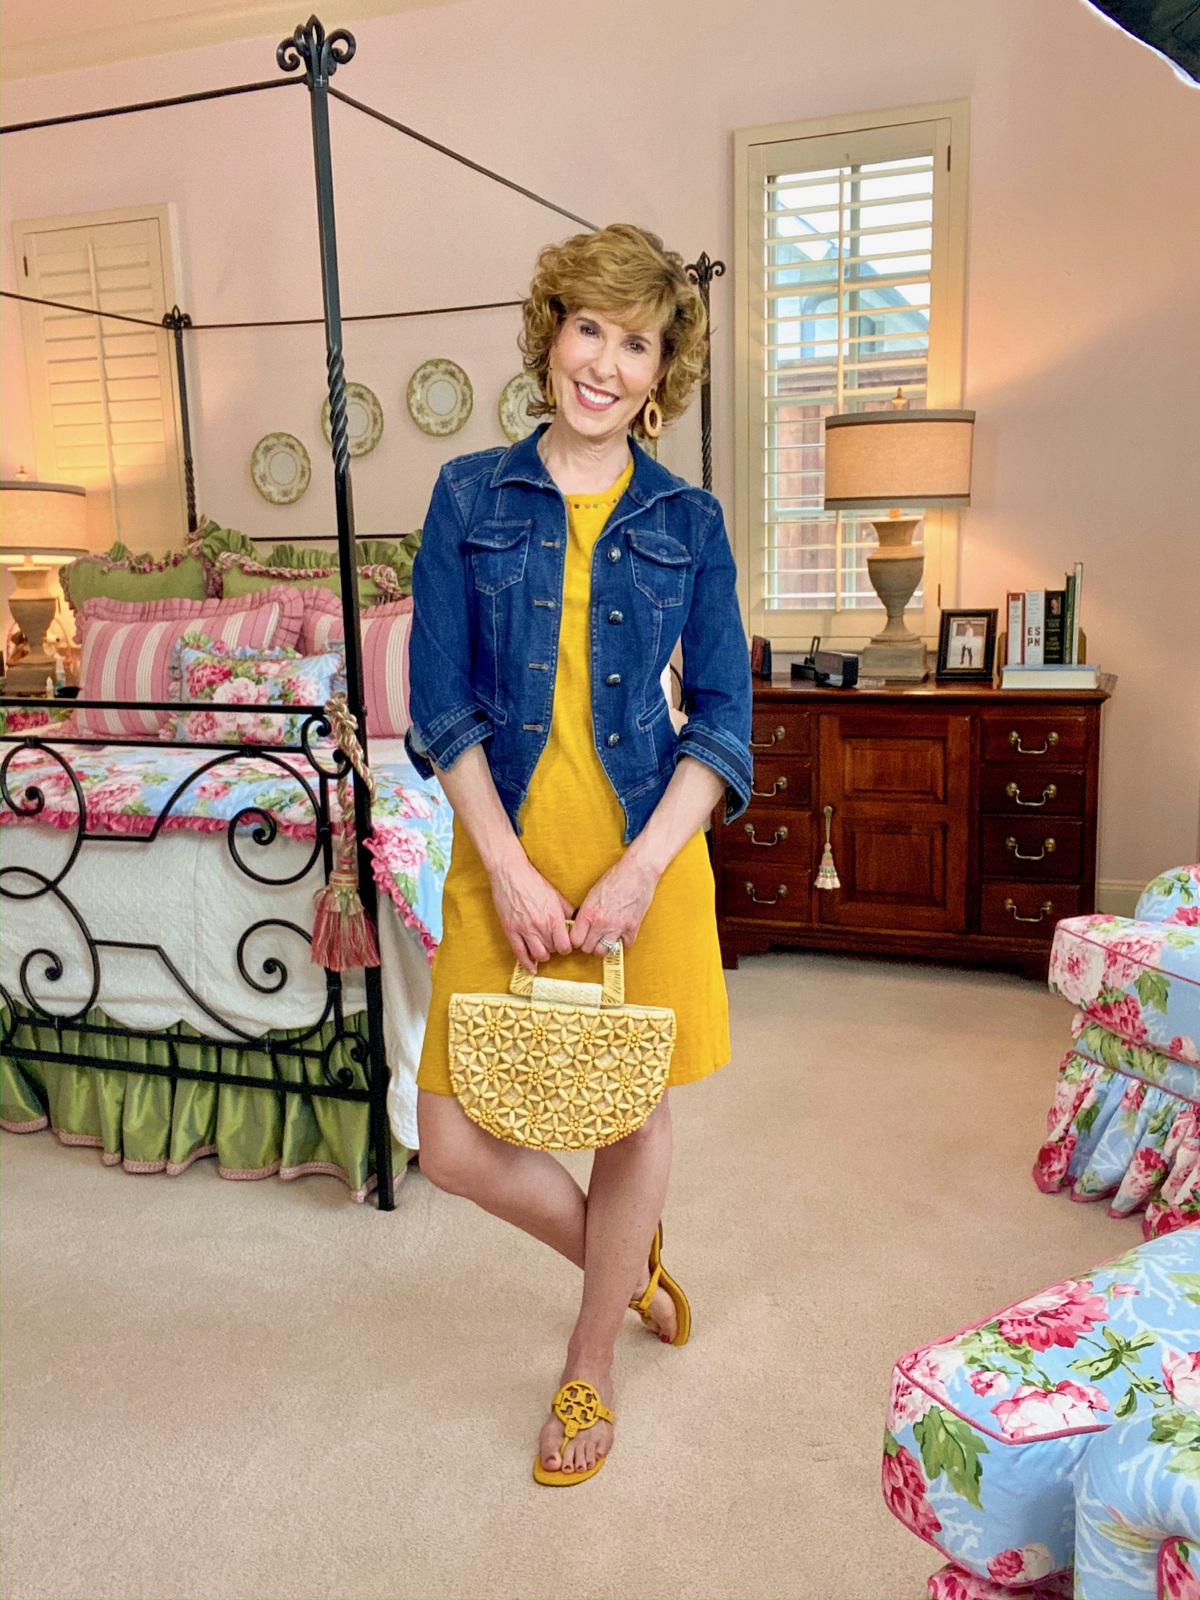 woman over 50 in yellow dress denim jacket standing in colorful bedroom